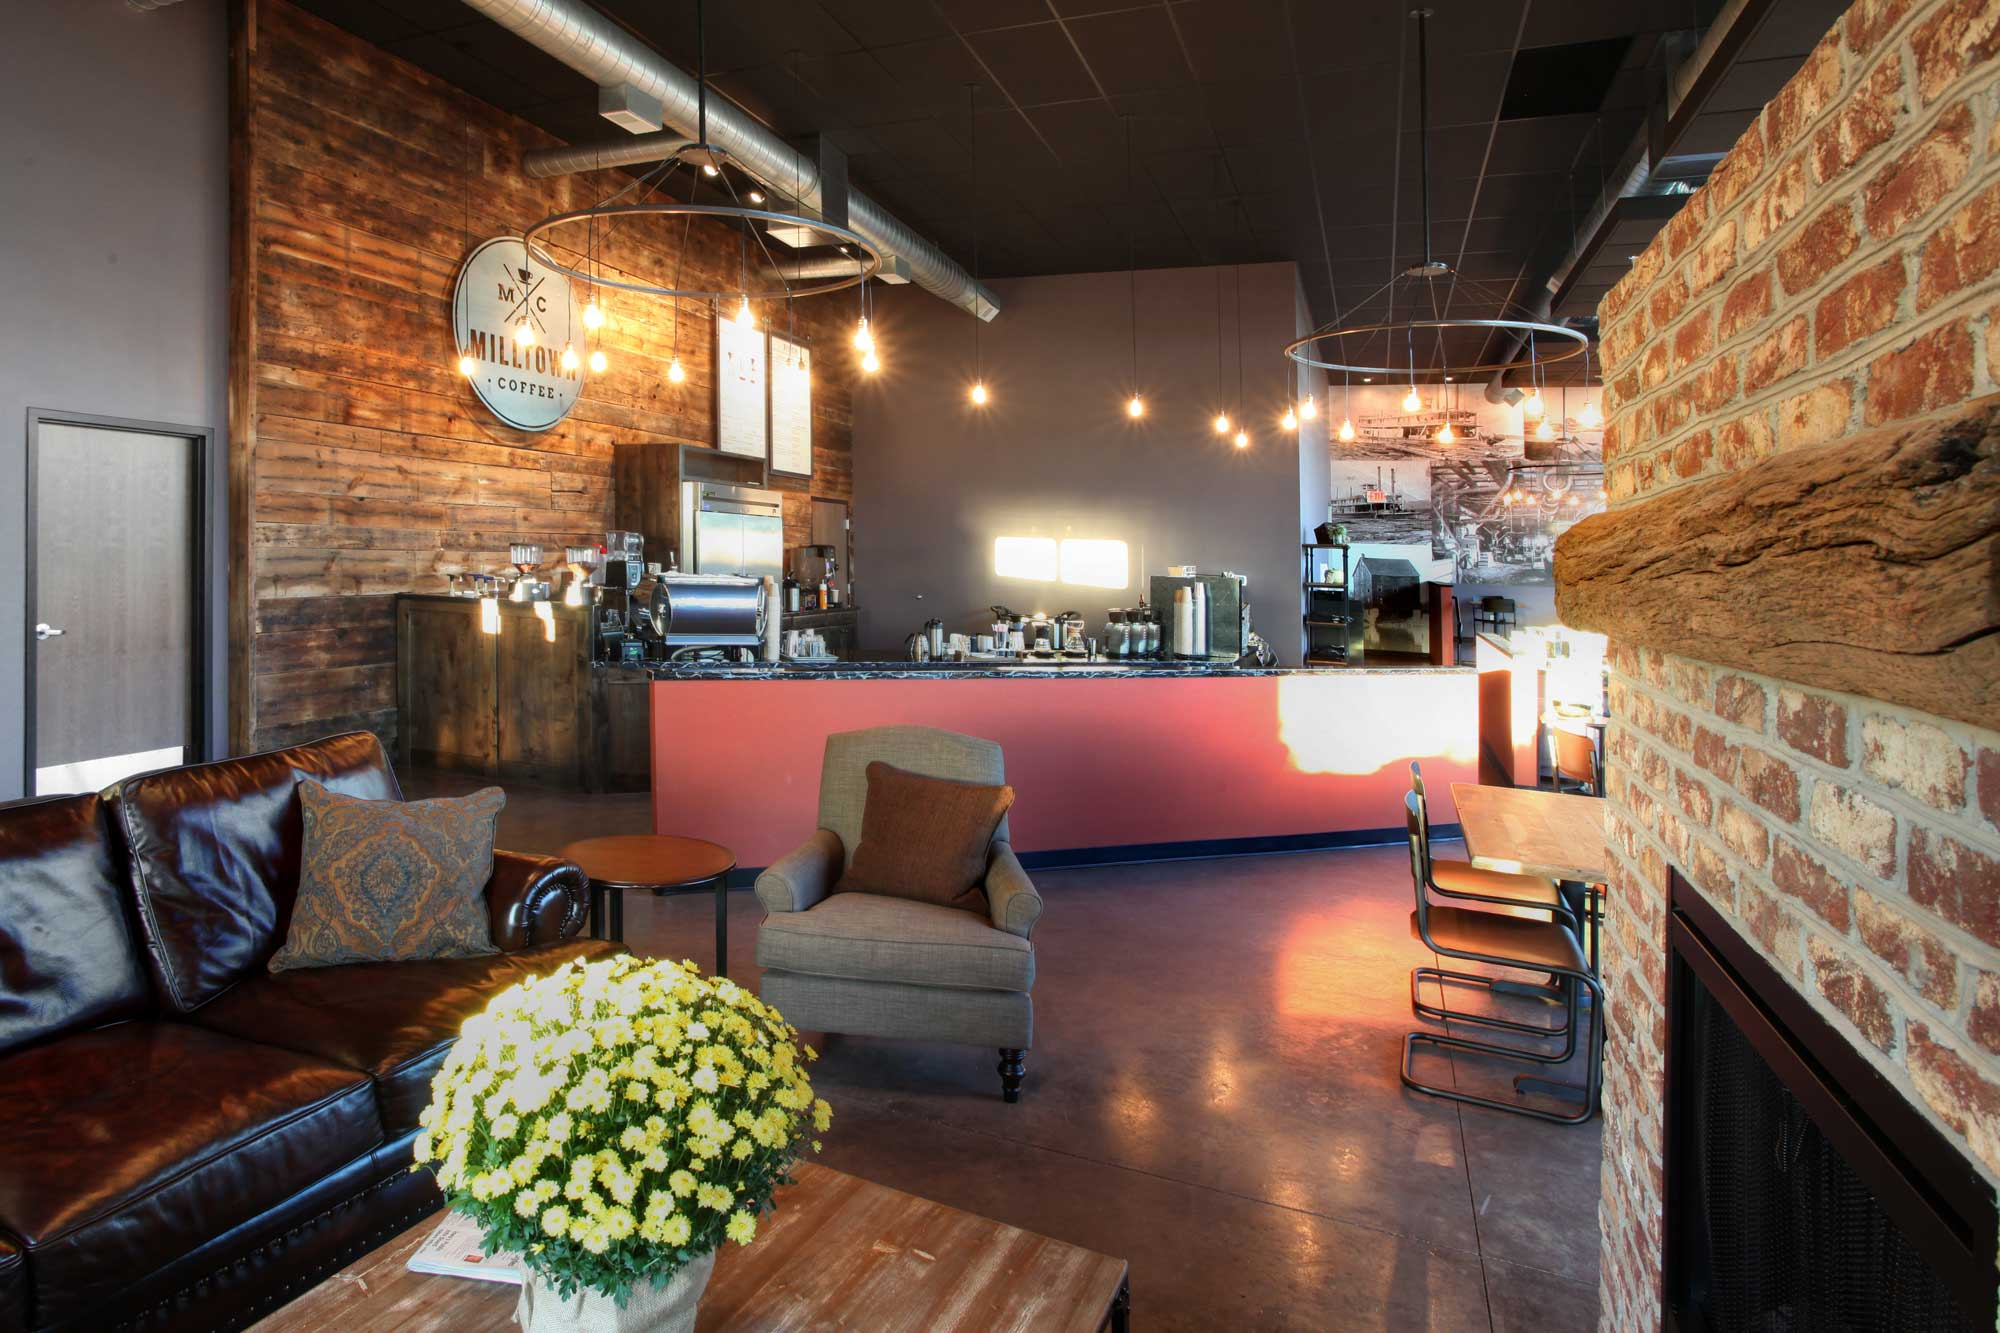 Feature of Milltown Coffee restful lounge area with fireplace and couch